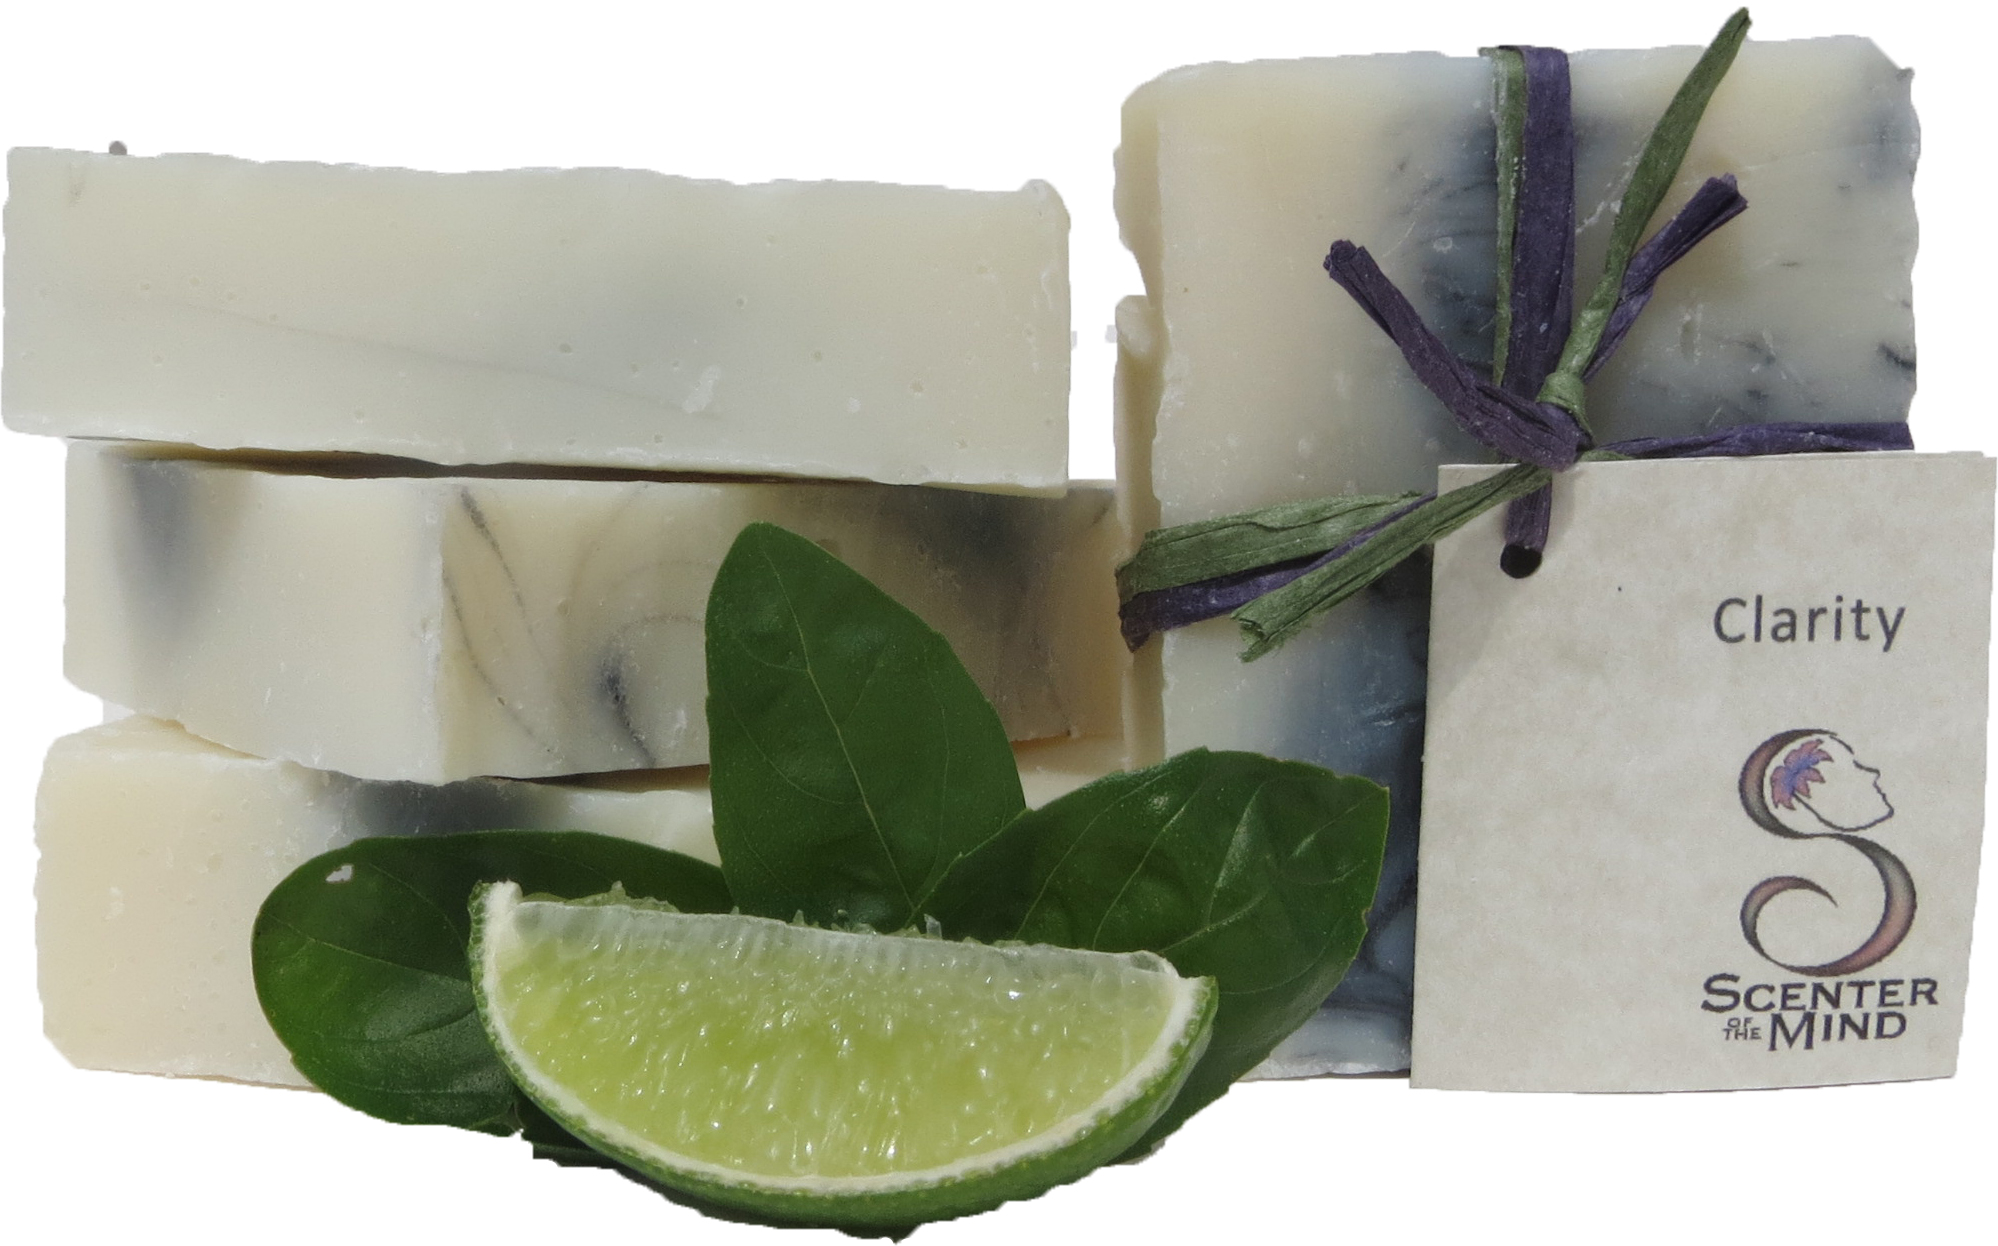 Clarity all natural soap